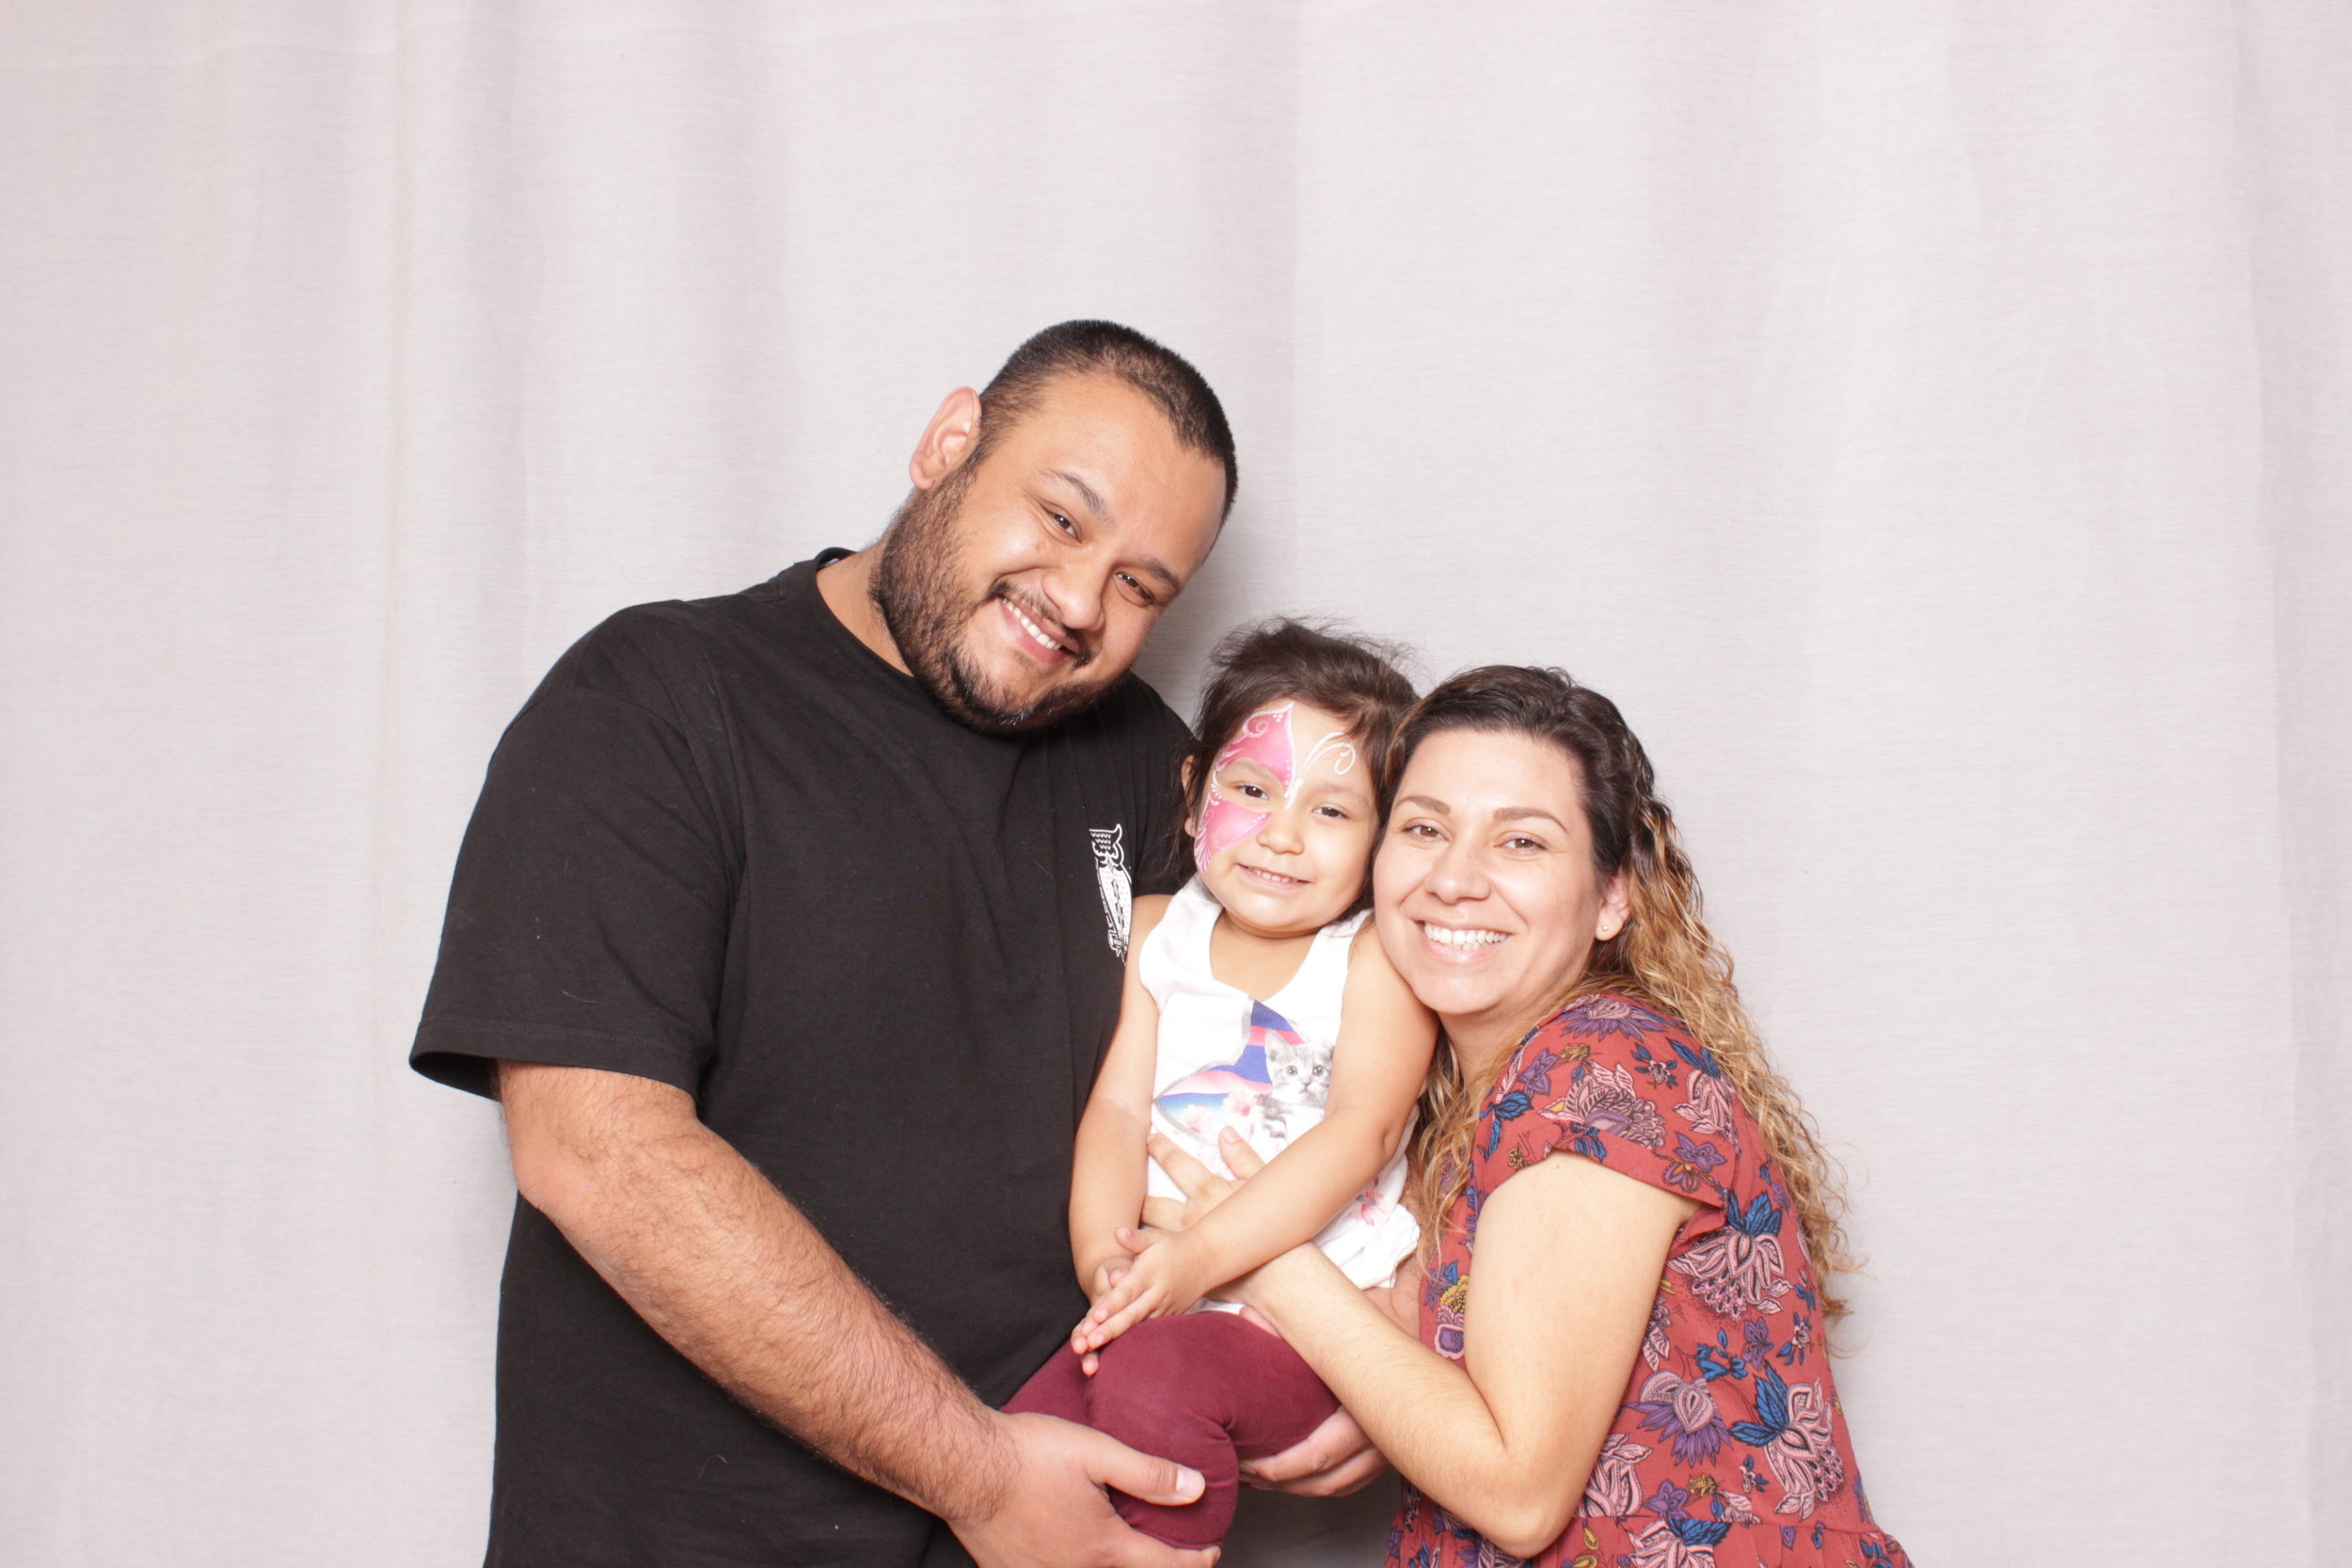 Chico-photo-booth-rental-local-